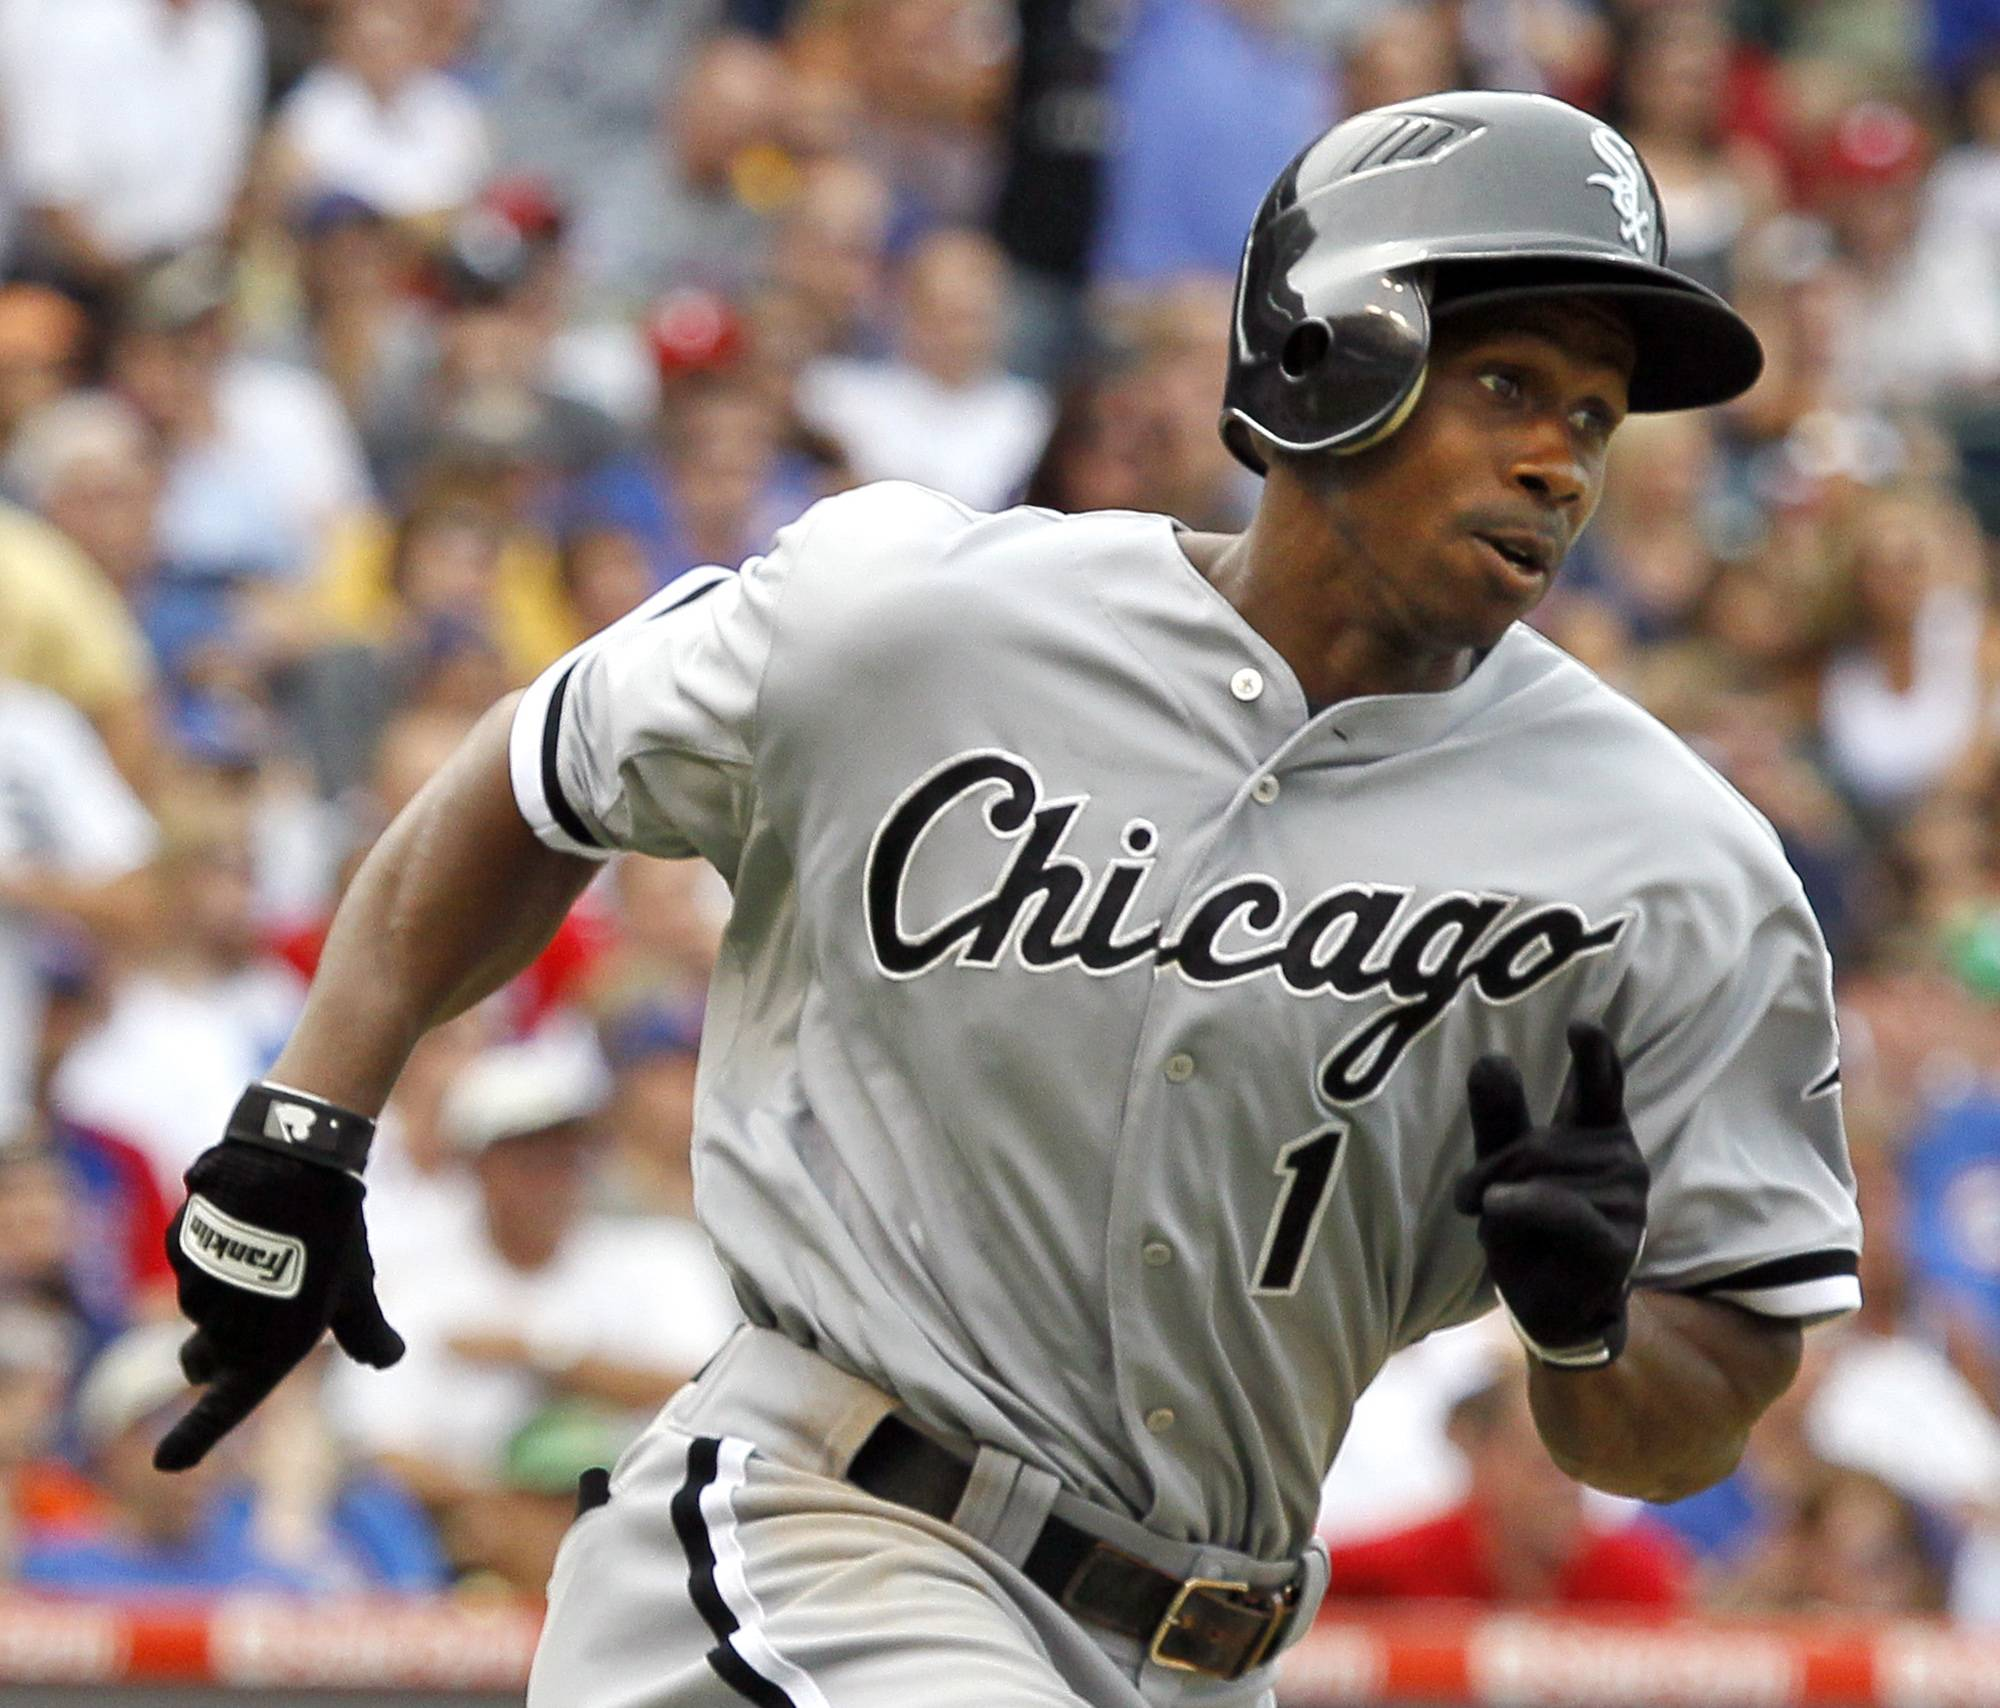 Pierre's triple gives White Sox third straight win